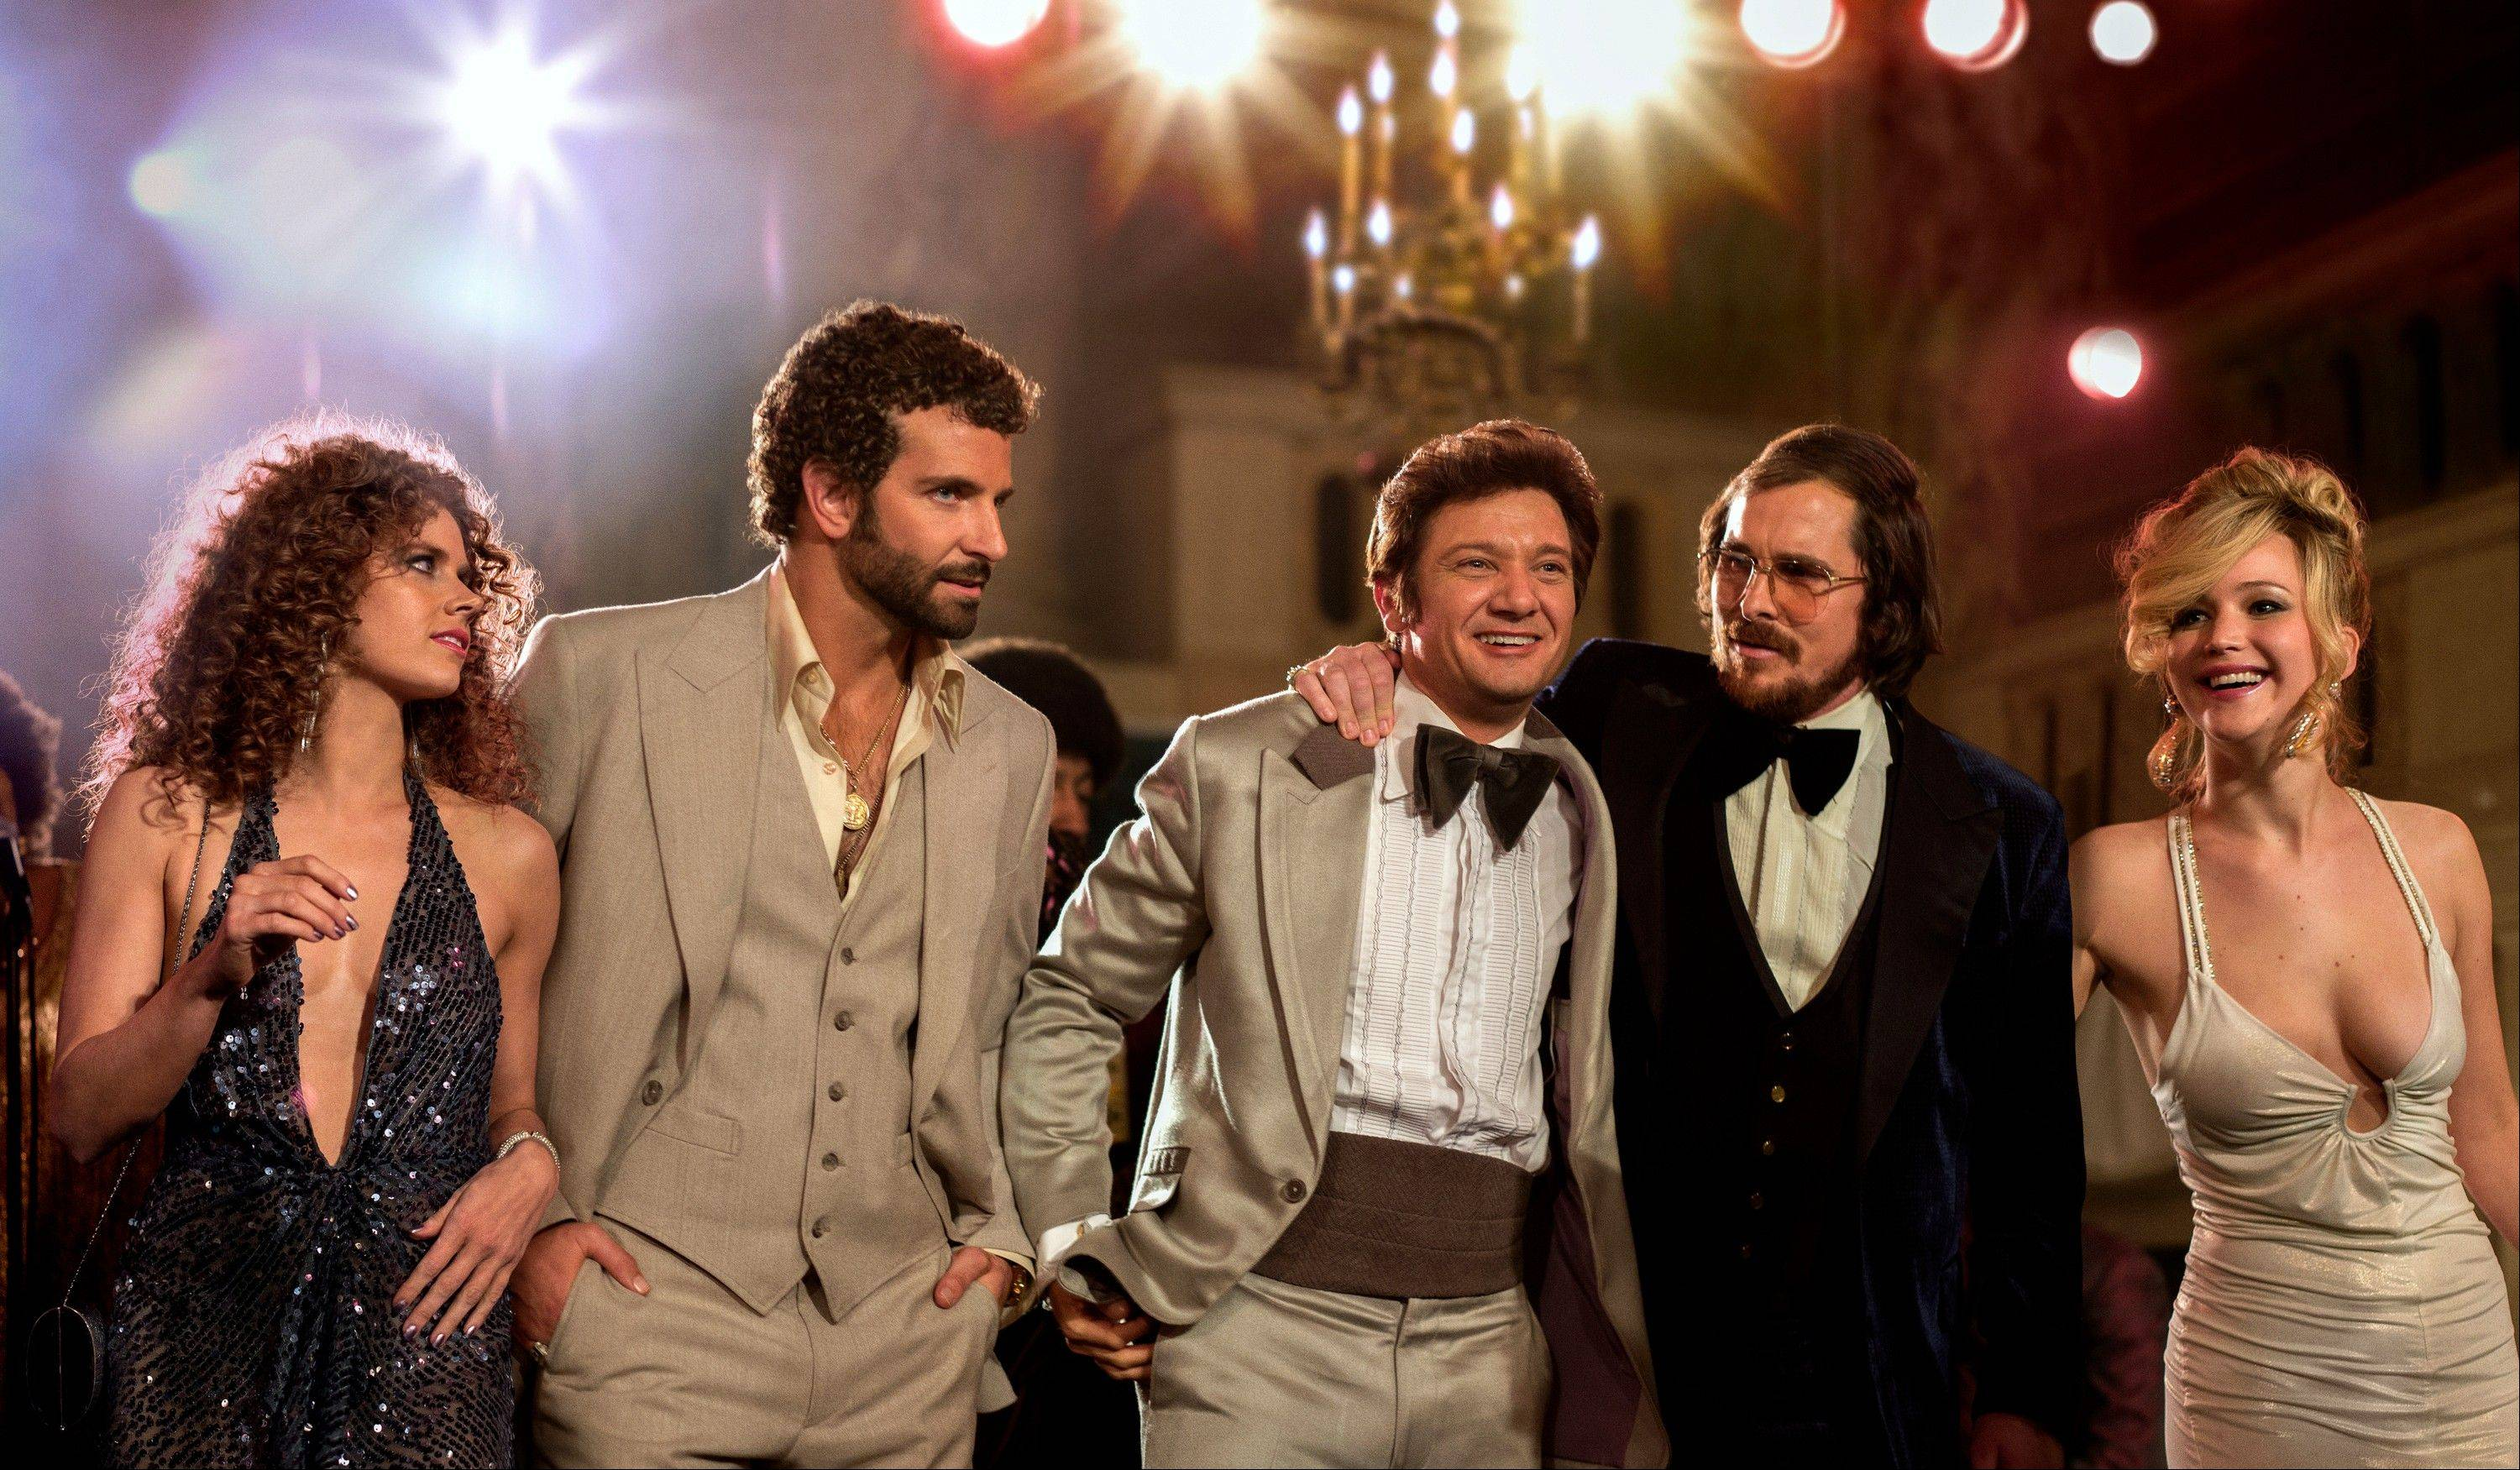 Amy Adams, Bradley Cooper, Jeremy Renner, Christian Bale and Jennifer Lawrence star in �American Hustle,� which received 13 nominations for the Broadcast Film Critics Association�s 19th Annual Critics� Choice Movie Awards, airing Jan. 16 on the CW network.